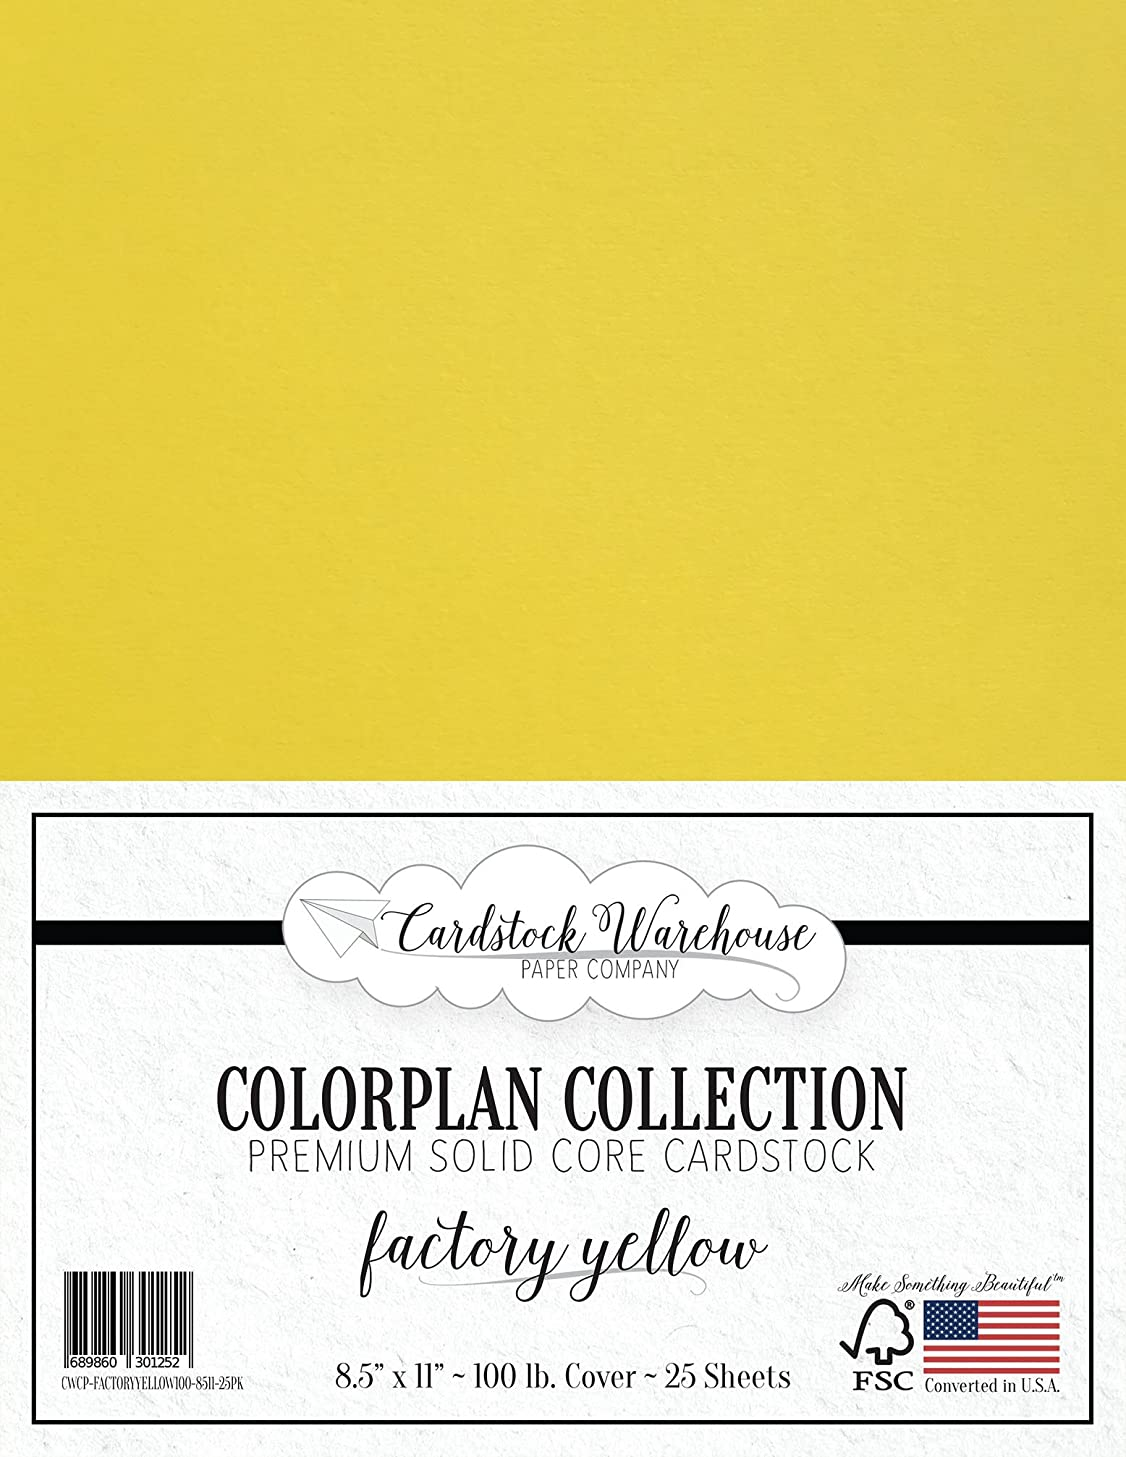 Factory Yellow Cardstock Paper - 8.5 x 11 inch Premium 100 lb. Cover - 25 Sheets from Cardstock Warehouse